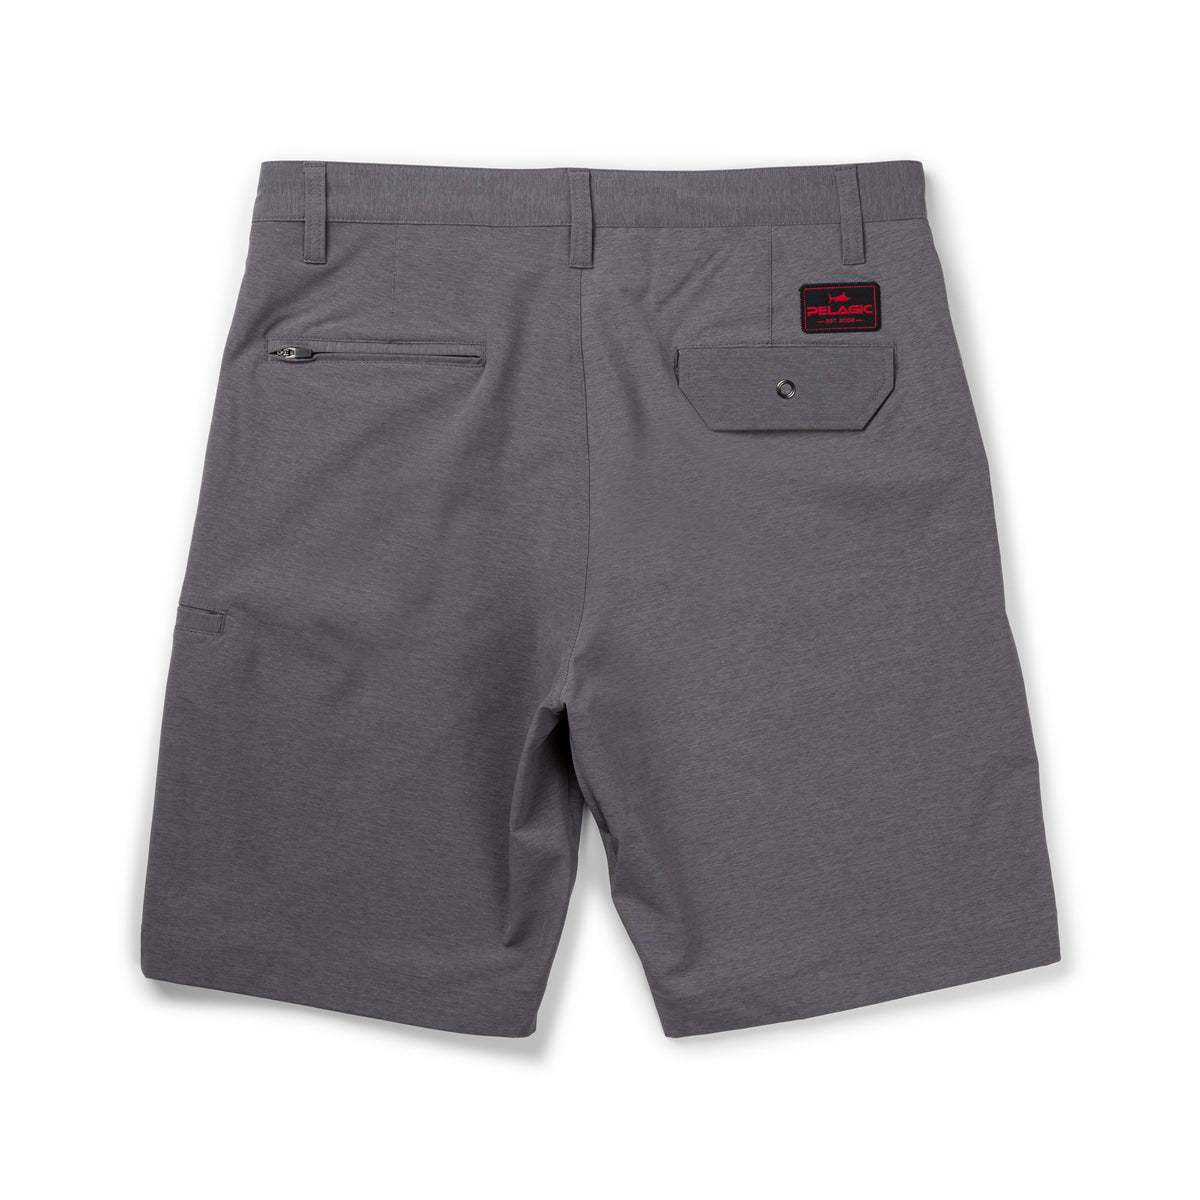 Mako Hybrid Fishing Shorts Big Image - 2